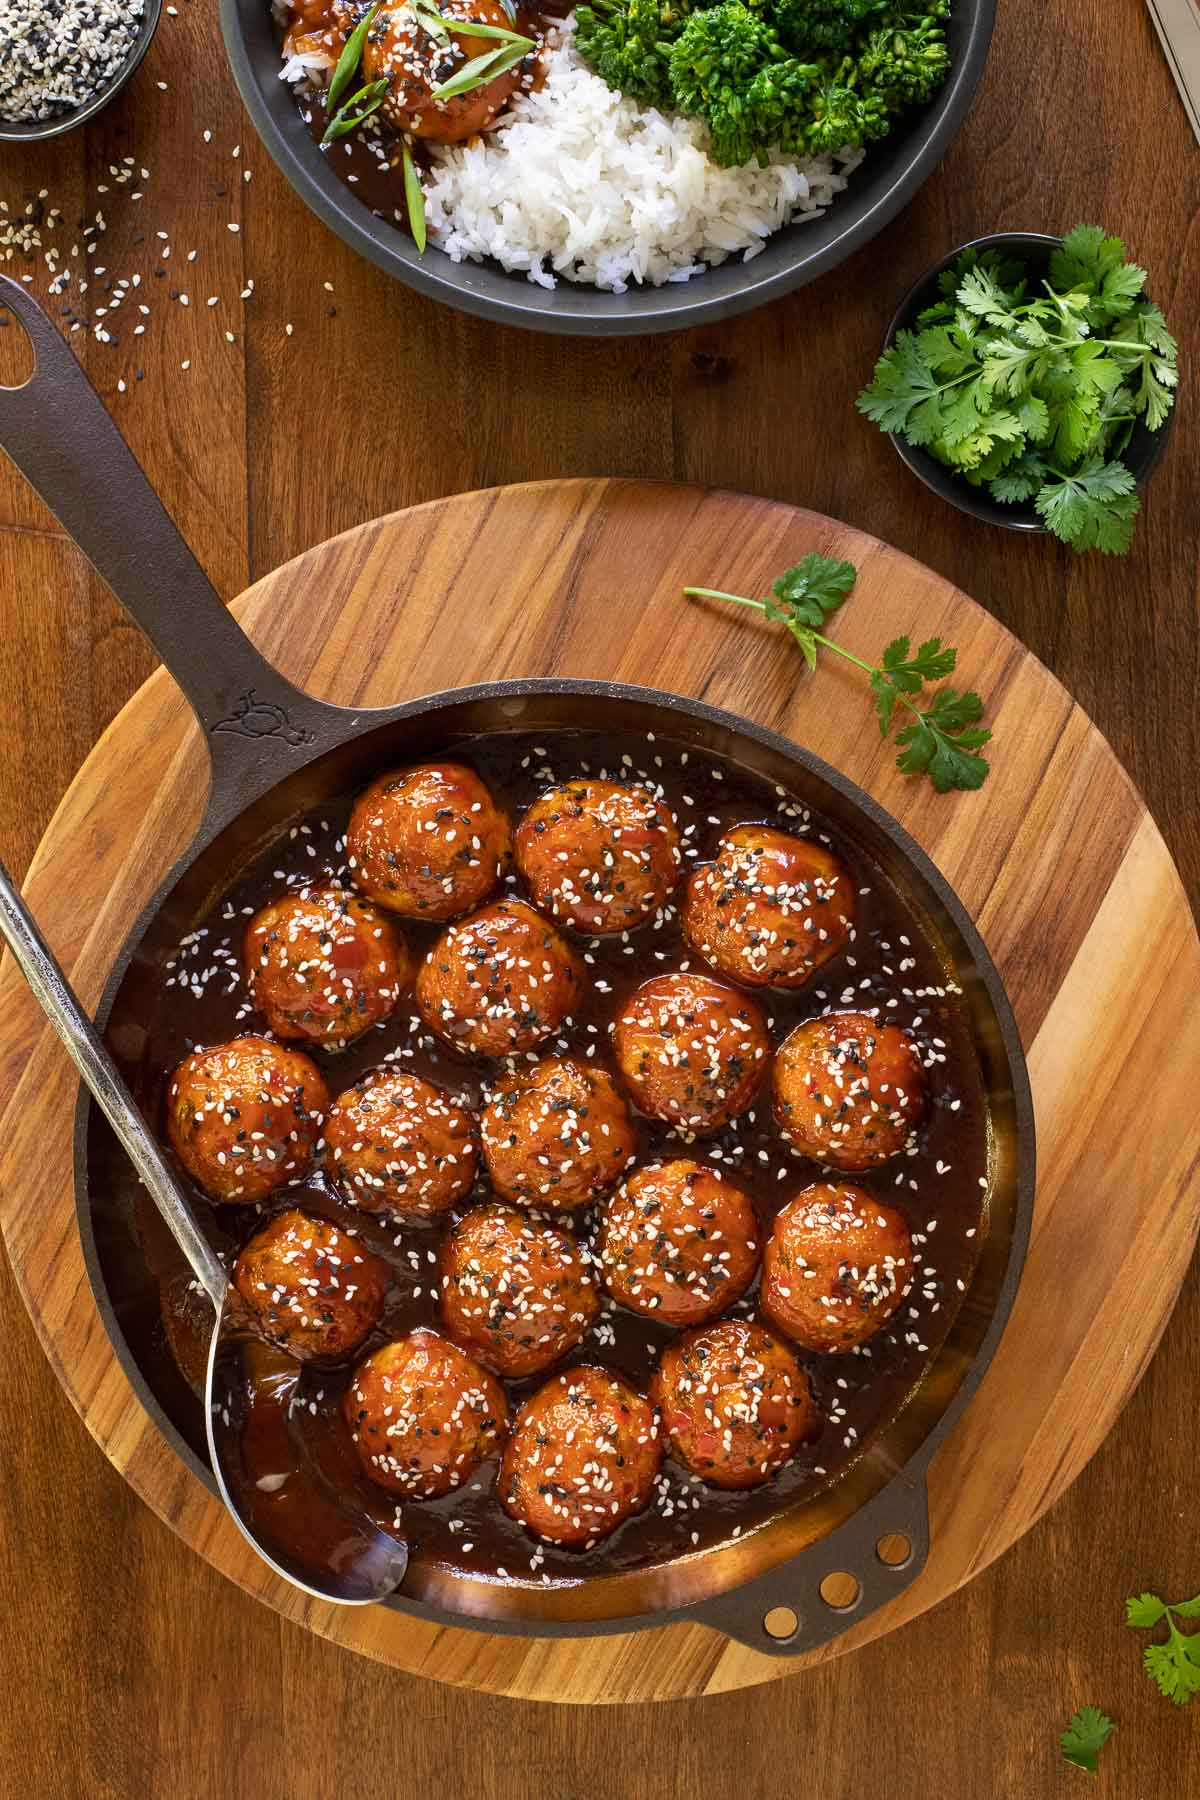 Overhead vertical photo of Huli Huli Chicken Meatballs in a cast iron skillet and also in a serving bowl with rice and broccoli.